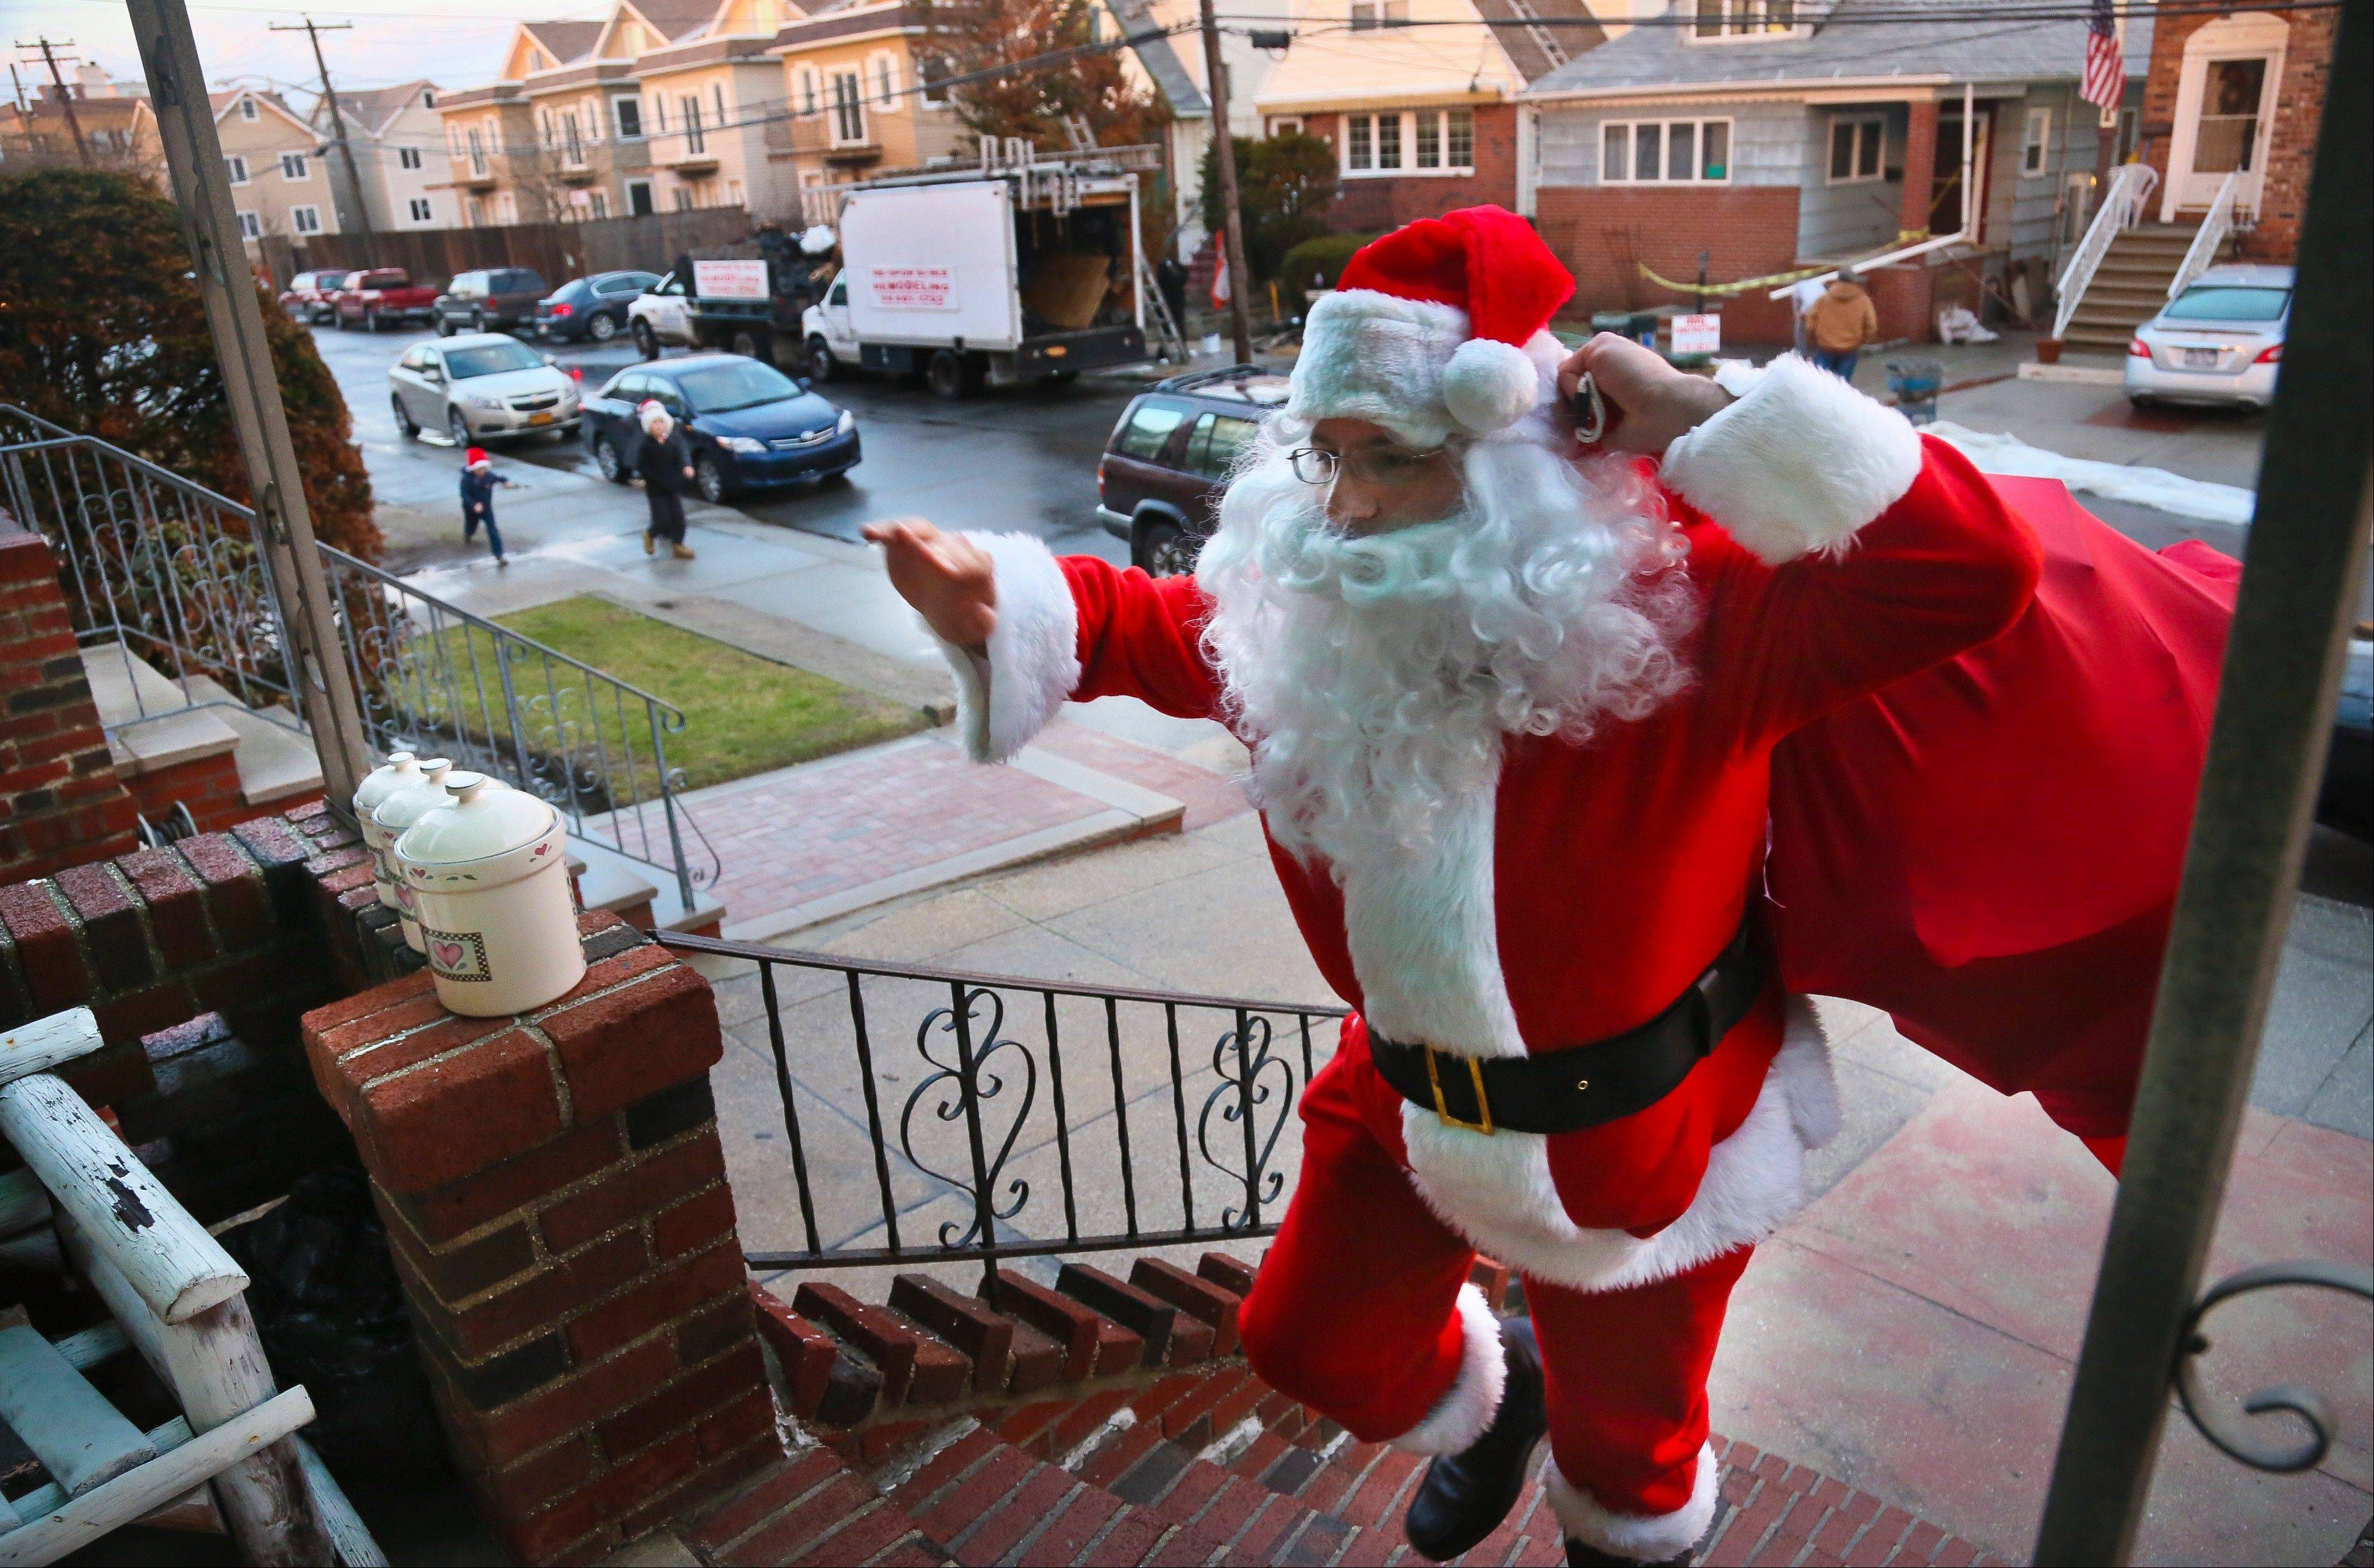 Michael Sciaraffo, as Santa Claus, arrives at the home of the Creamer family to deliver toys in the Belle Harbor neighborhood of the Queens borough of New York. Using Facebook, Sciaraffo started a charitable enterprise to collect and personally deliver toys to children affected by superstorm Sandy, dressed as Santa Claus.